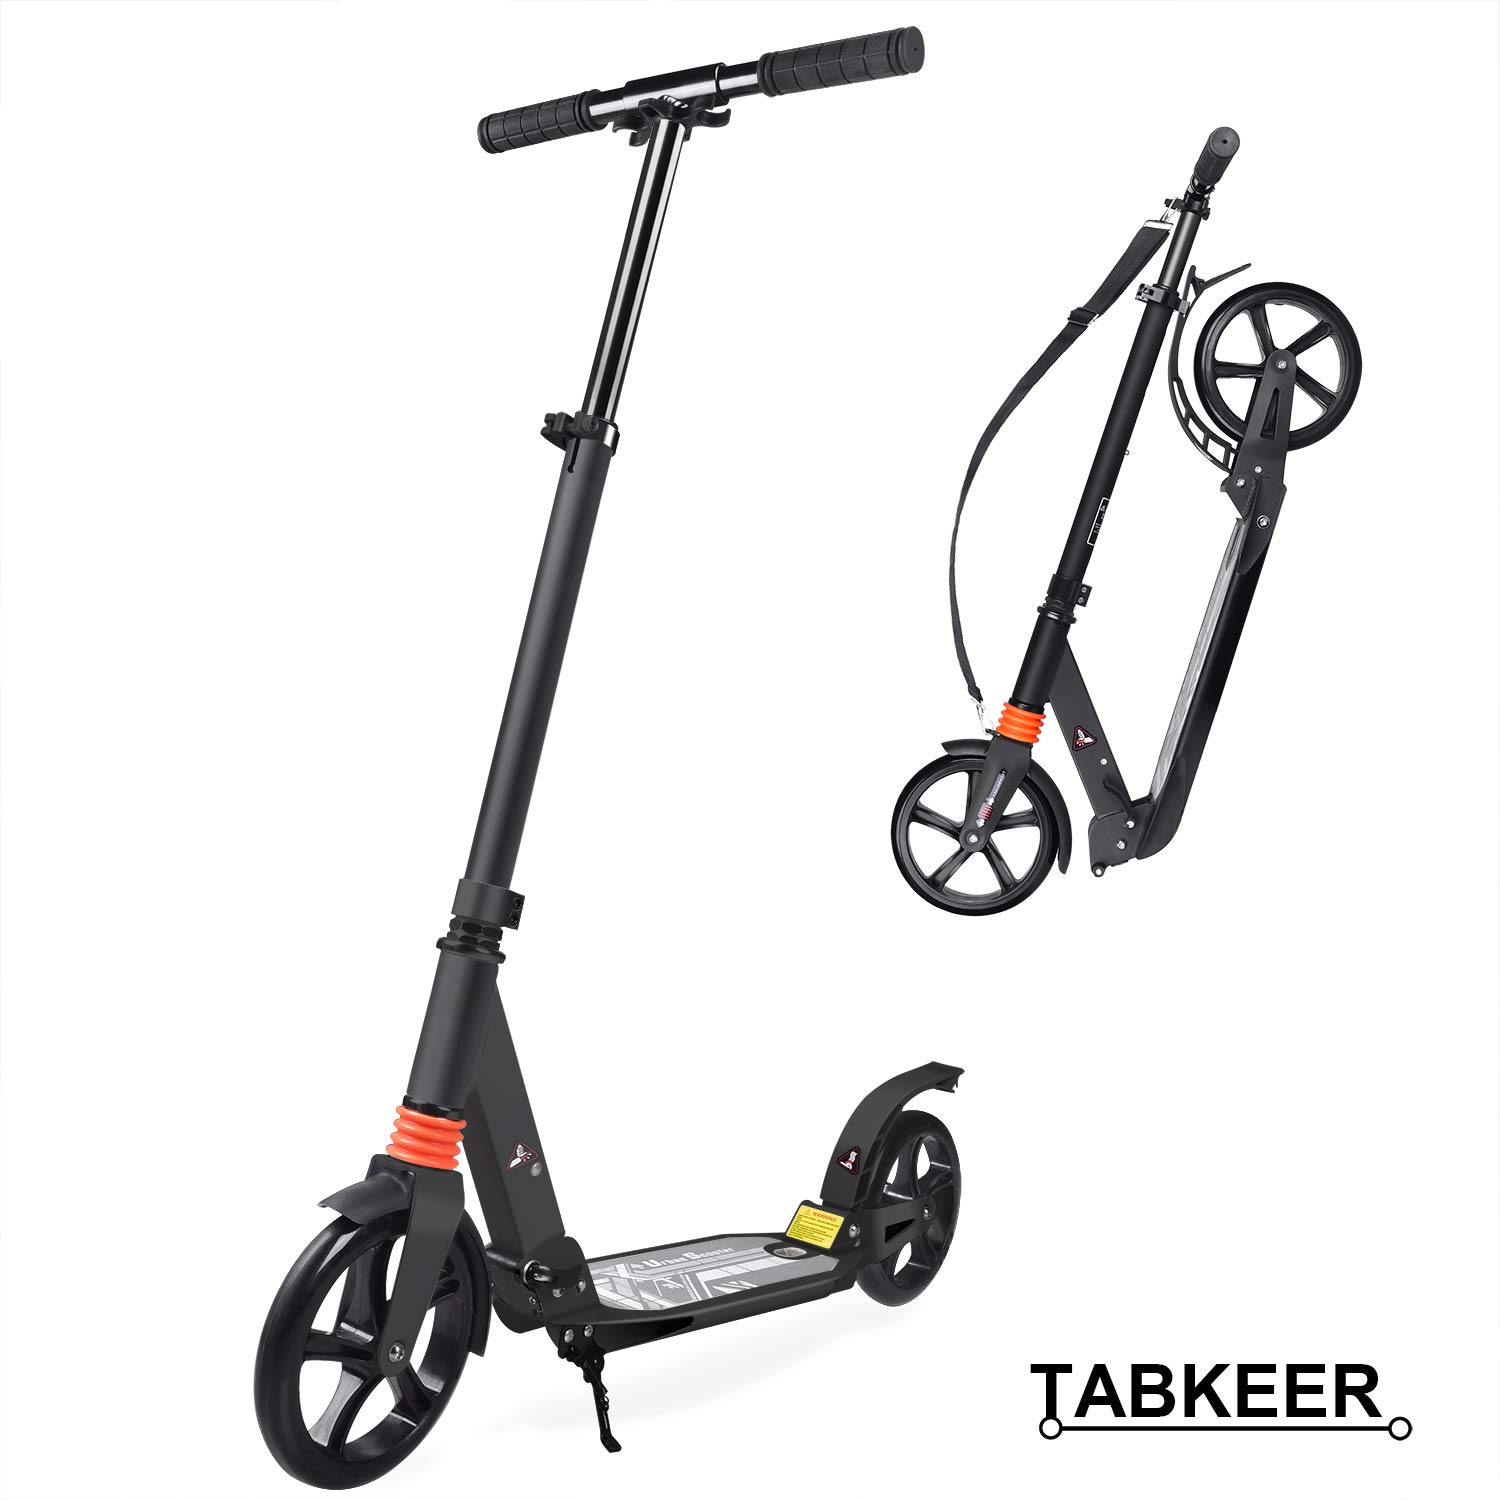 TABKEER Scooter for Adults Teens - 8 inch Big Wheel Scooter, Easy Folding Kick Scooter - Adjustable Handle & Double Suspension System, Reliable Rear Fender Brakes,Support 220lbs for Kids Age 12 Up by TABKEER